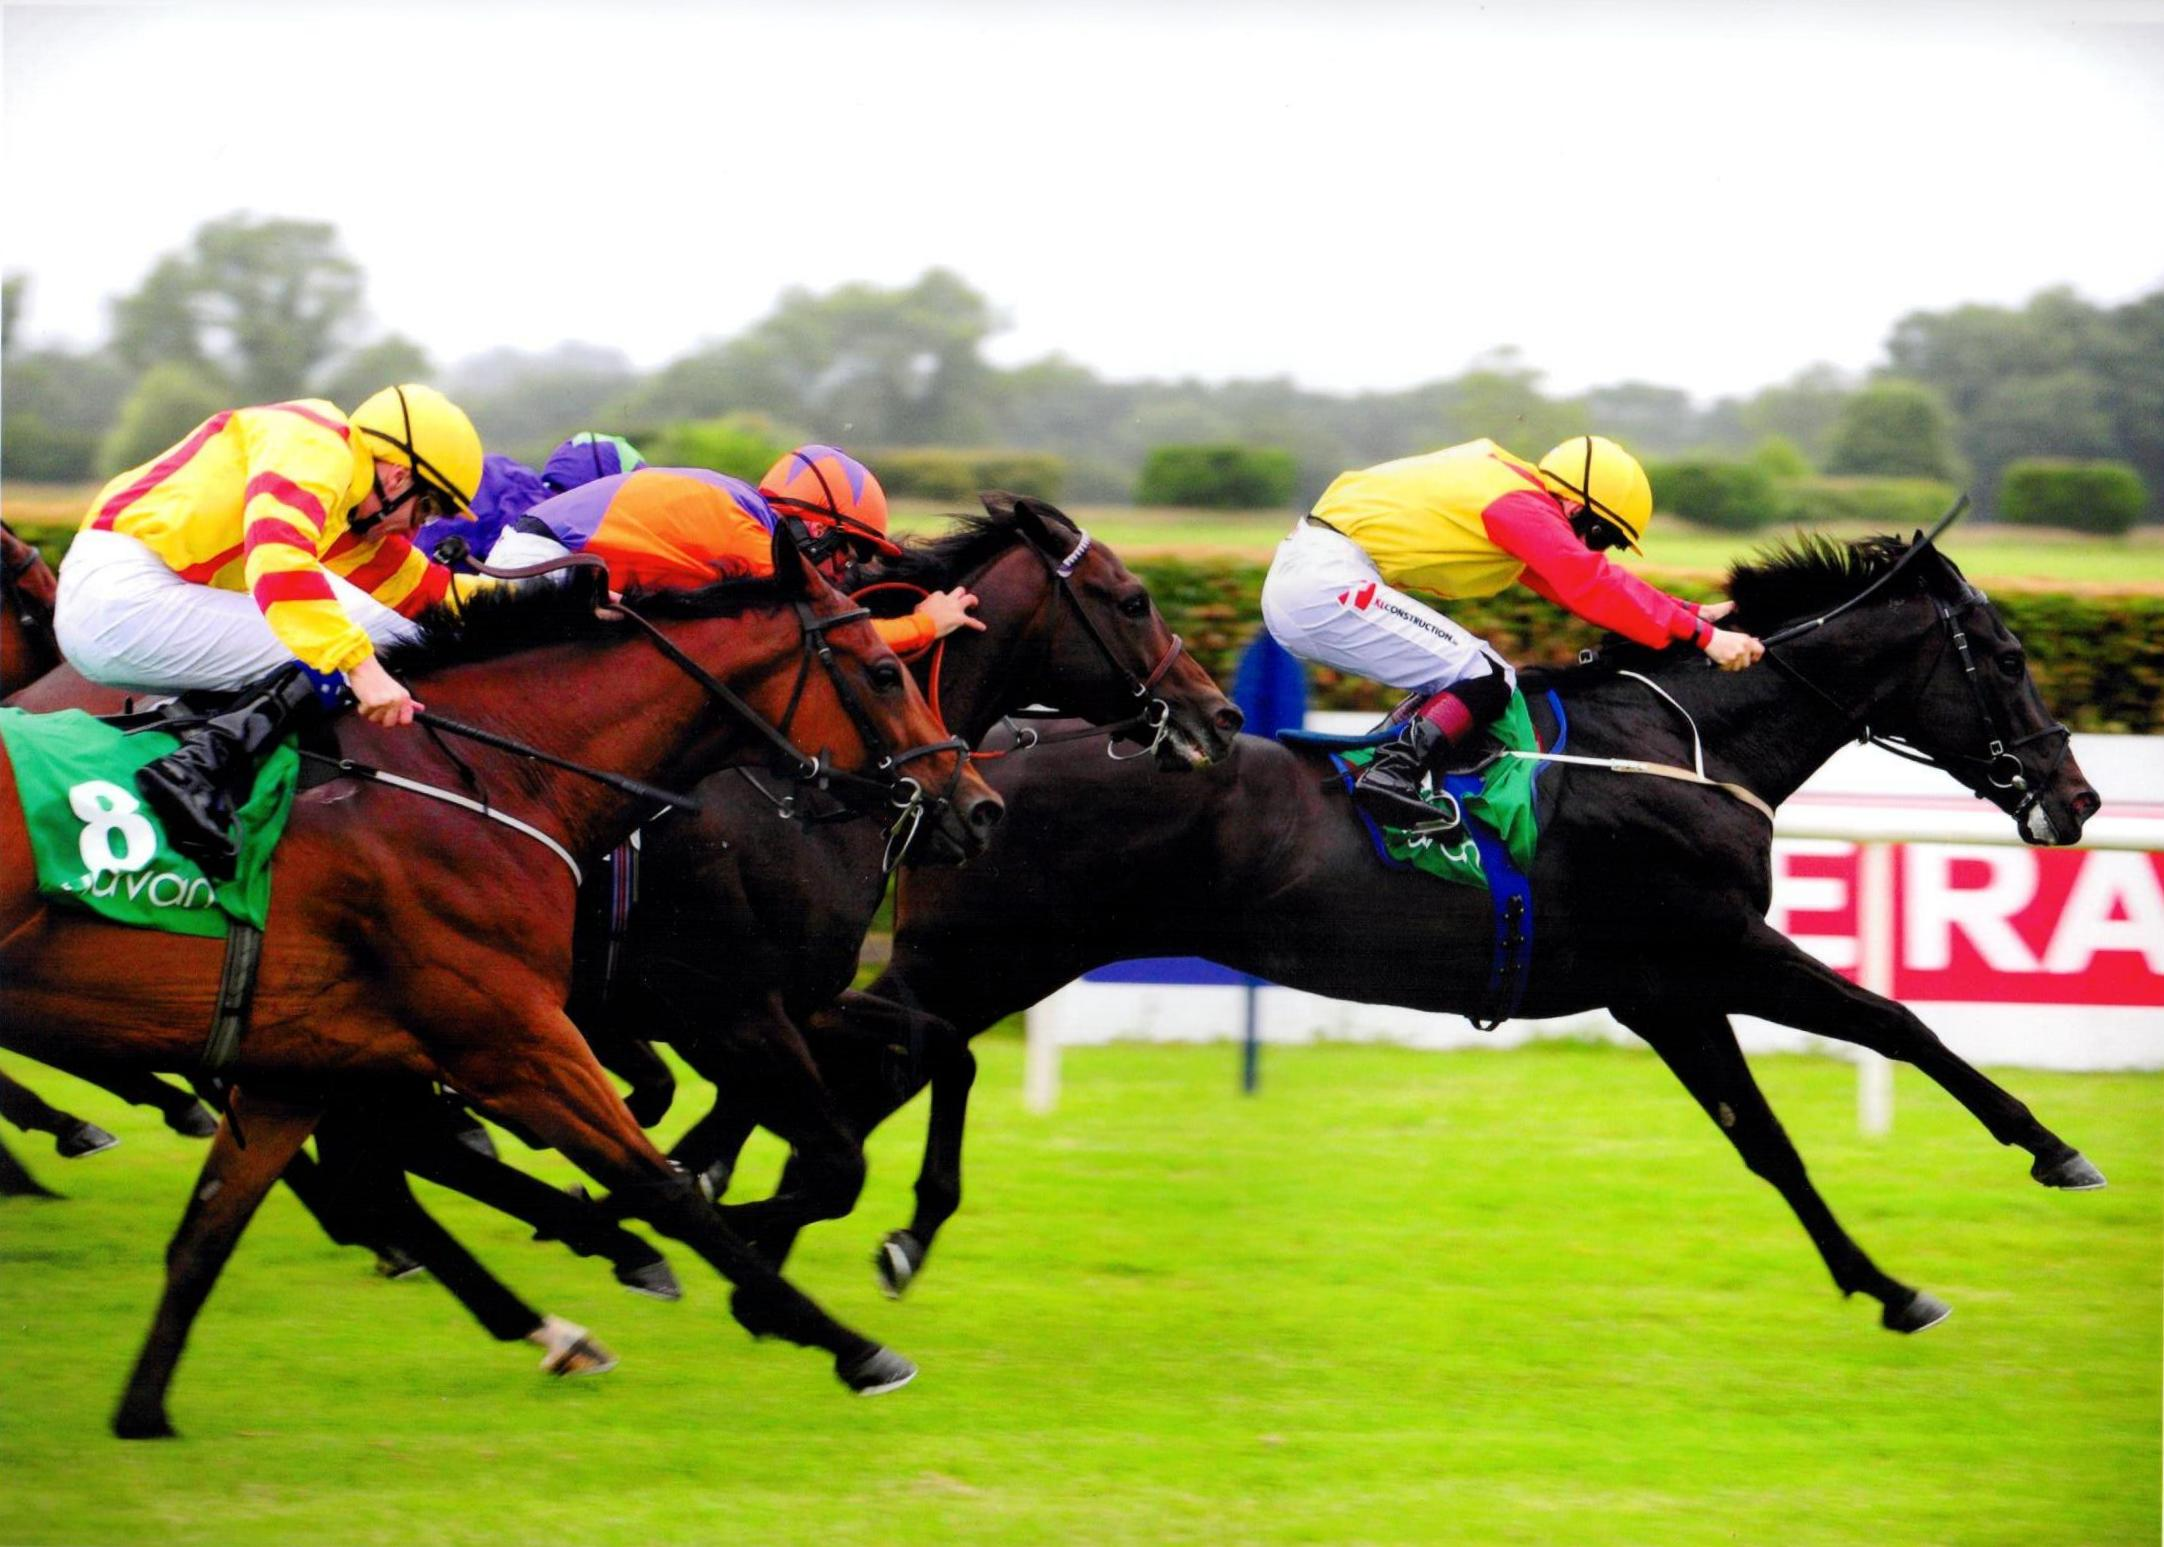 ELUSIVE HEIGHTS lands his second victory of the season at Navan 8th July 2016